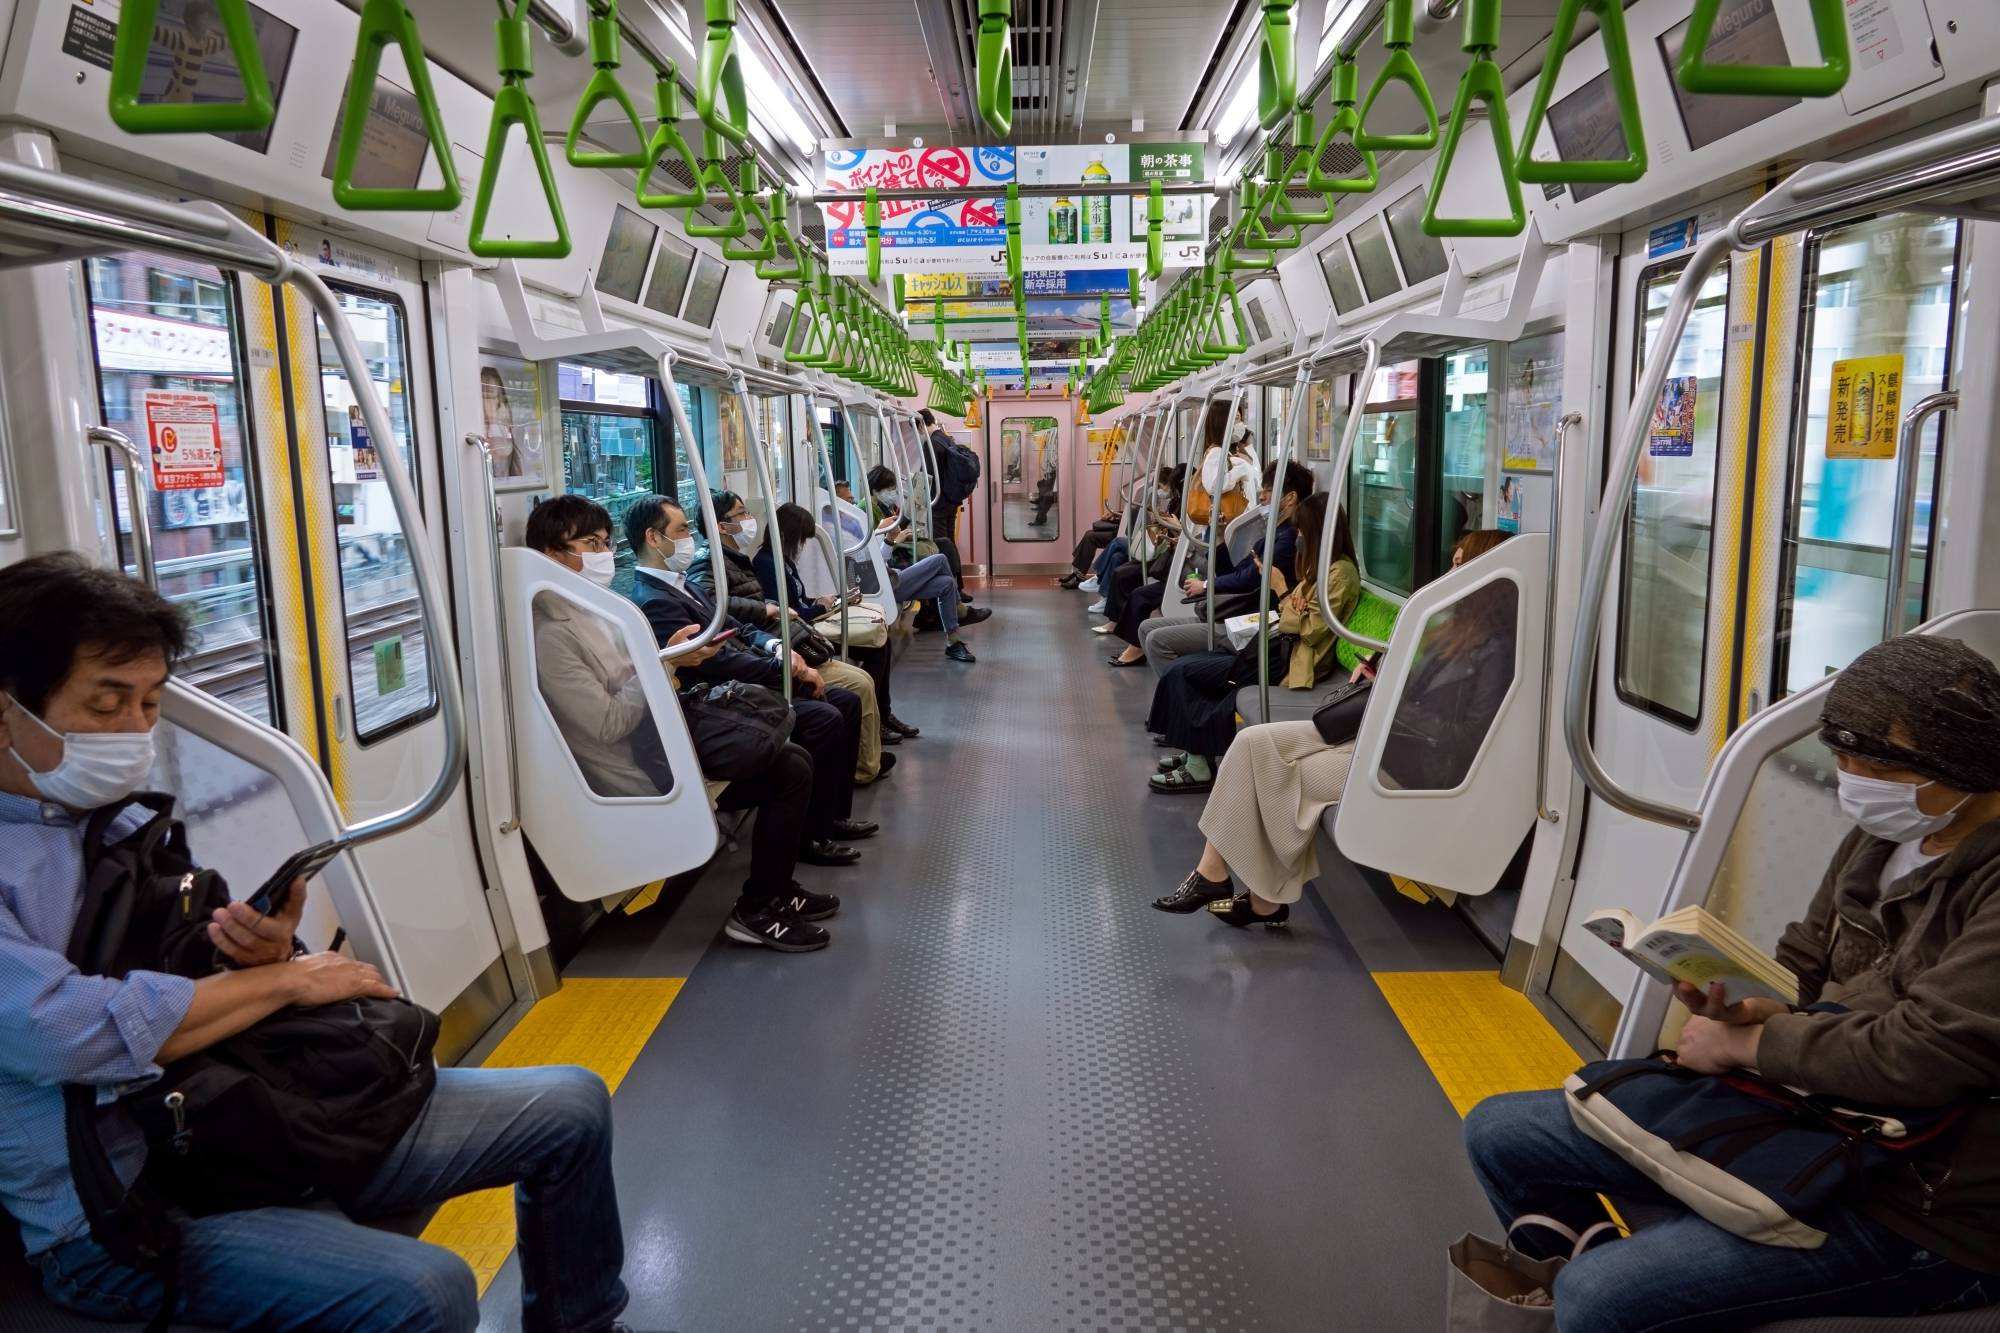 A study found that the opening of train doors at stations on Tokyo's Yamanote Line generates as much ventilation as keeping carriage windows open. | GETTY IMAGES